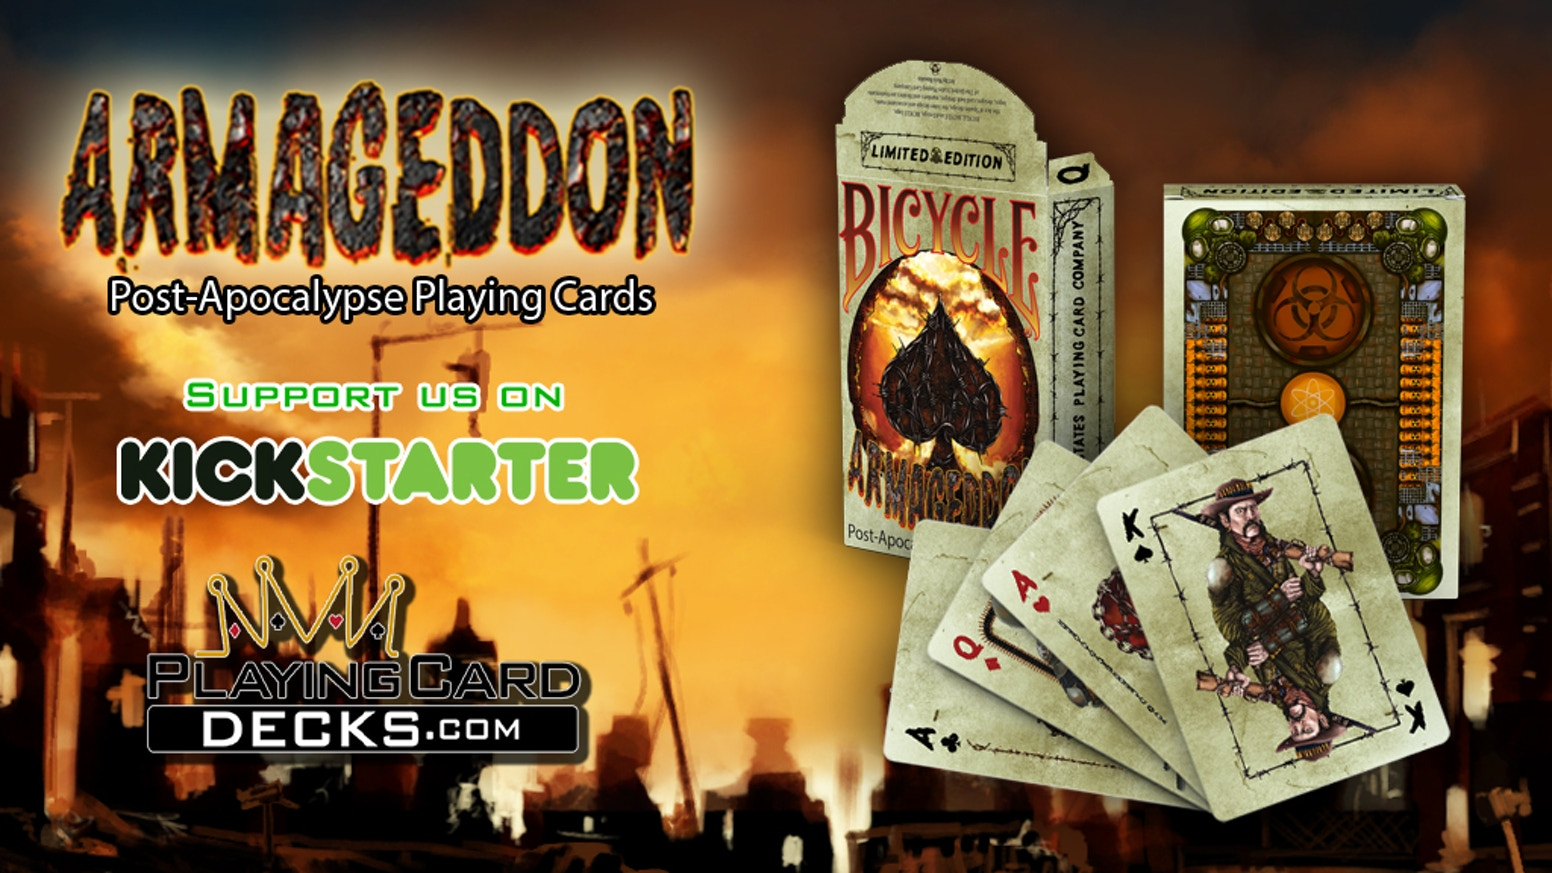 Armageddon Post-Apocalypse Bicycle Playing Cards Poker Size by Will